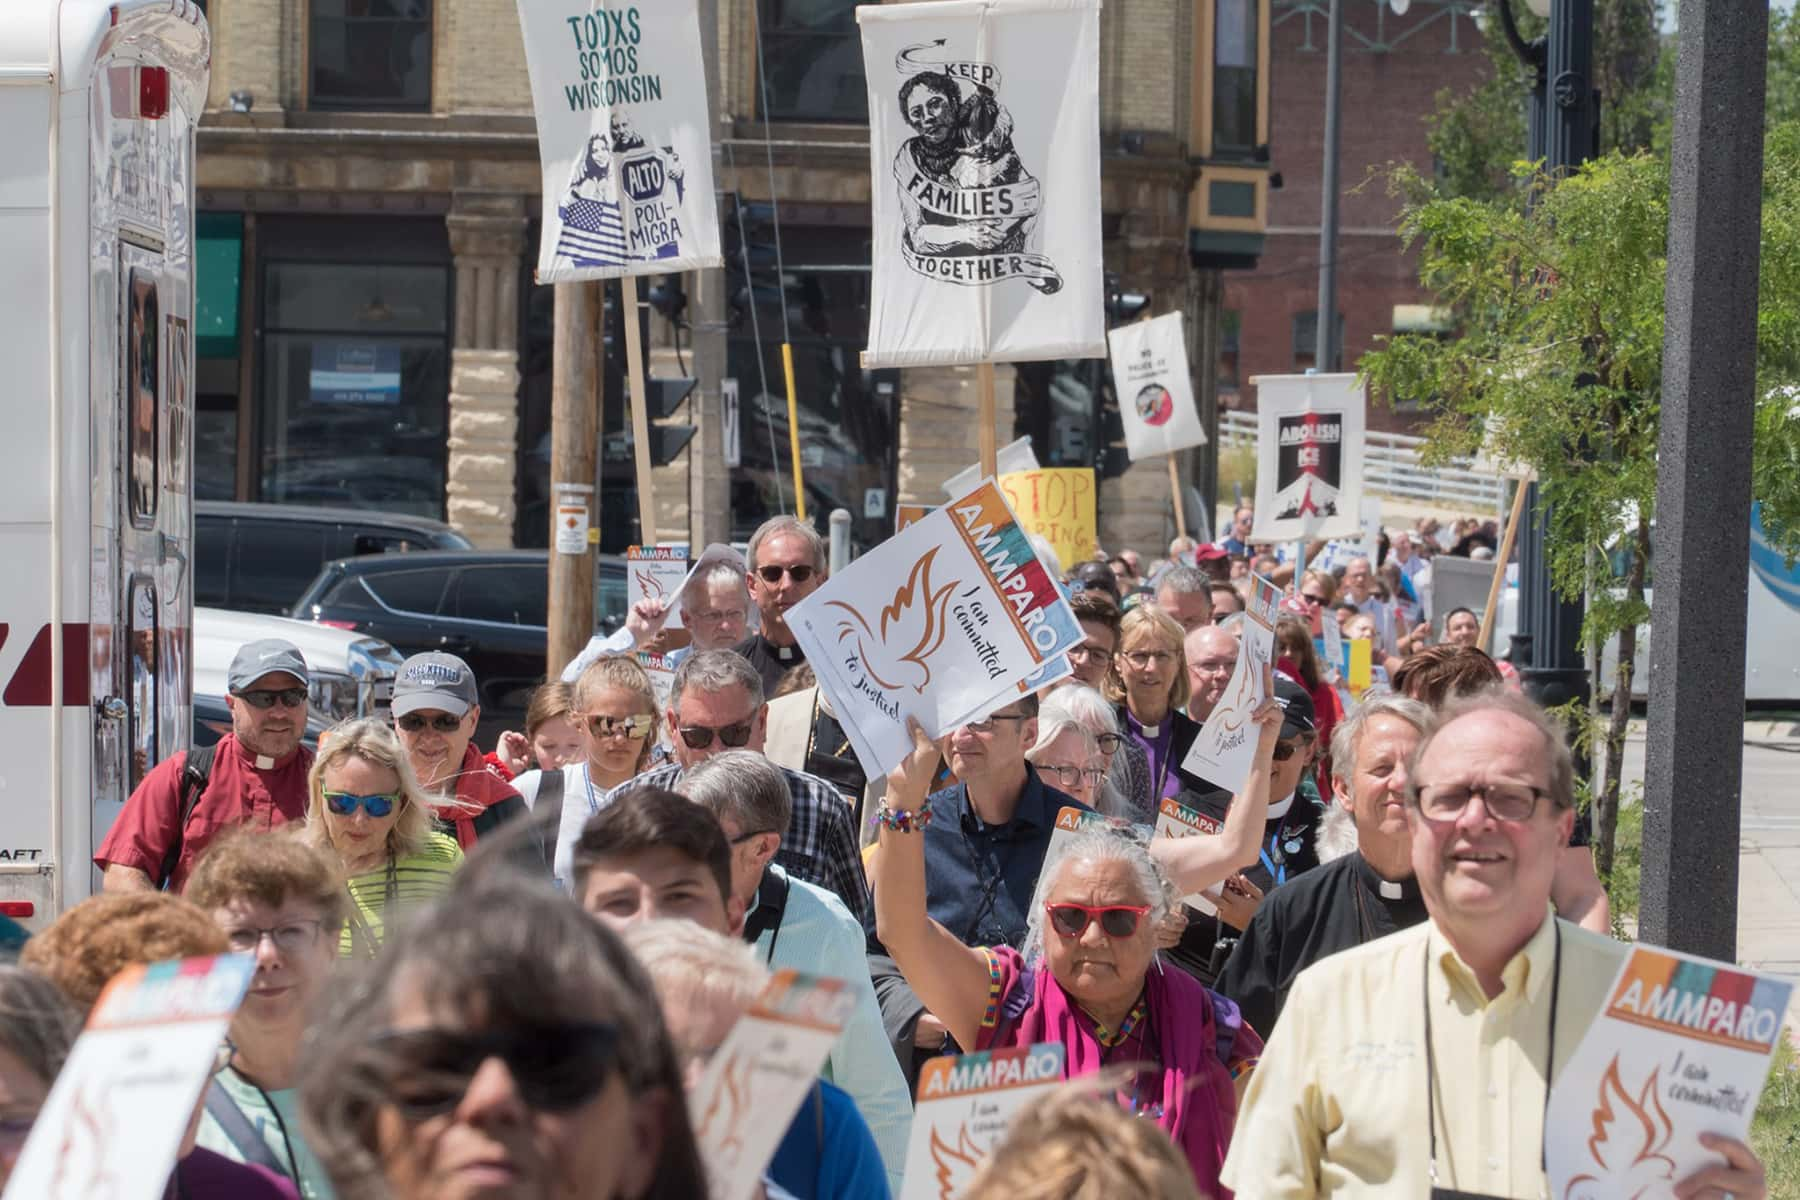 080719_lutheranmarchice_11